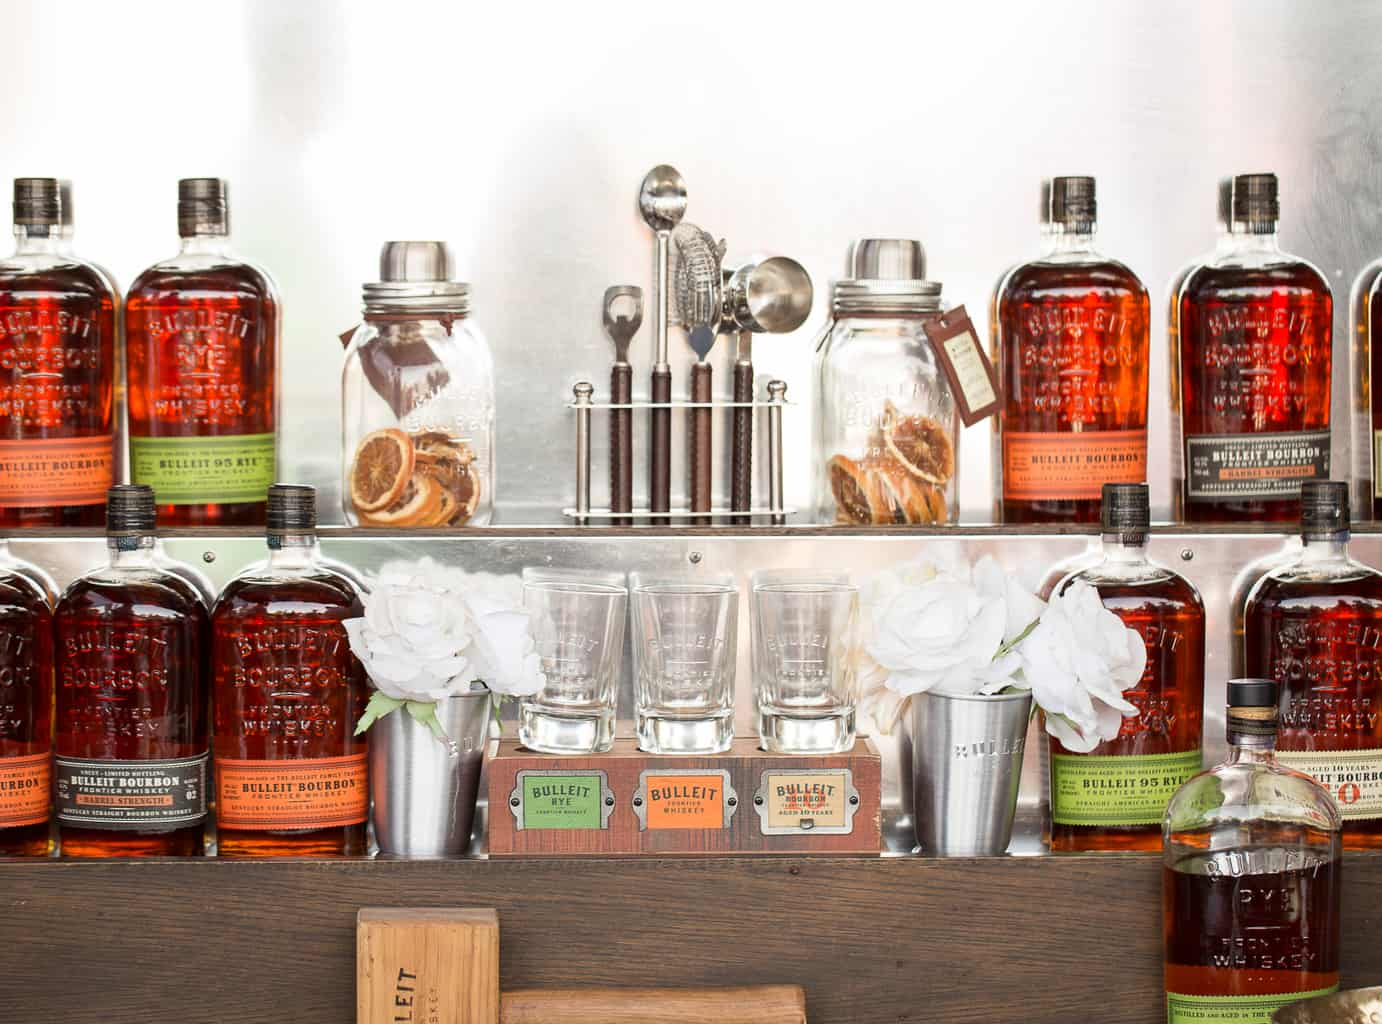 Bulleit at Atlanta Food and Wine Festival